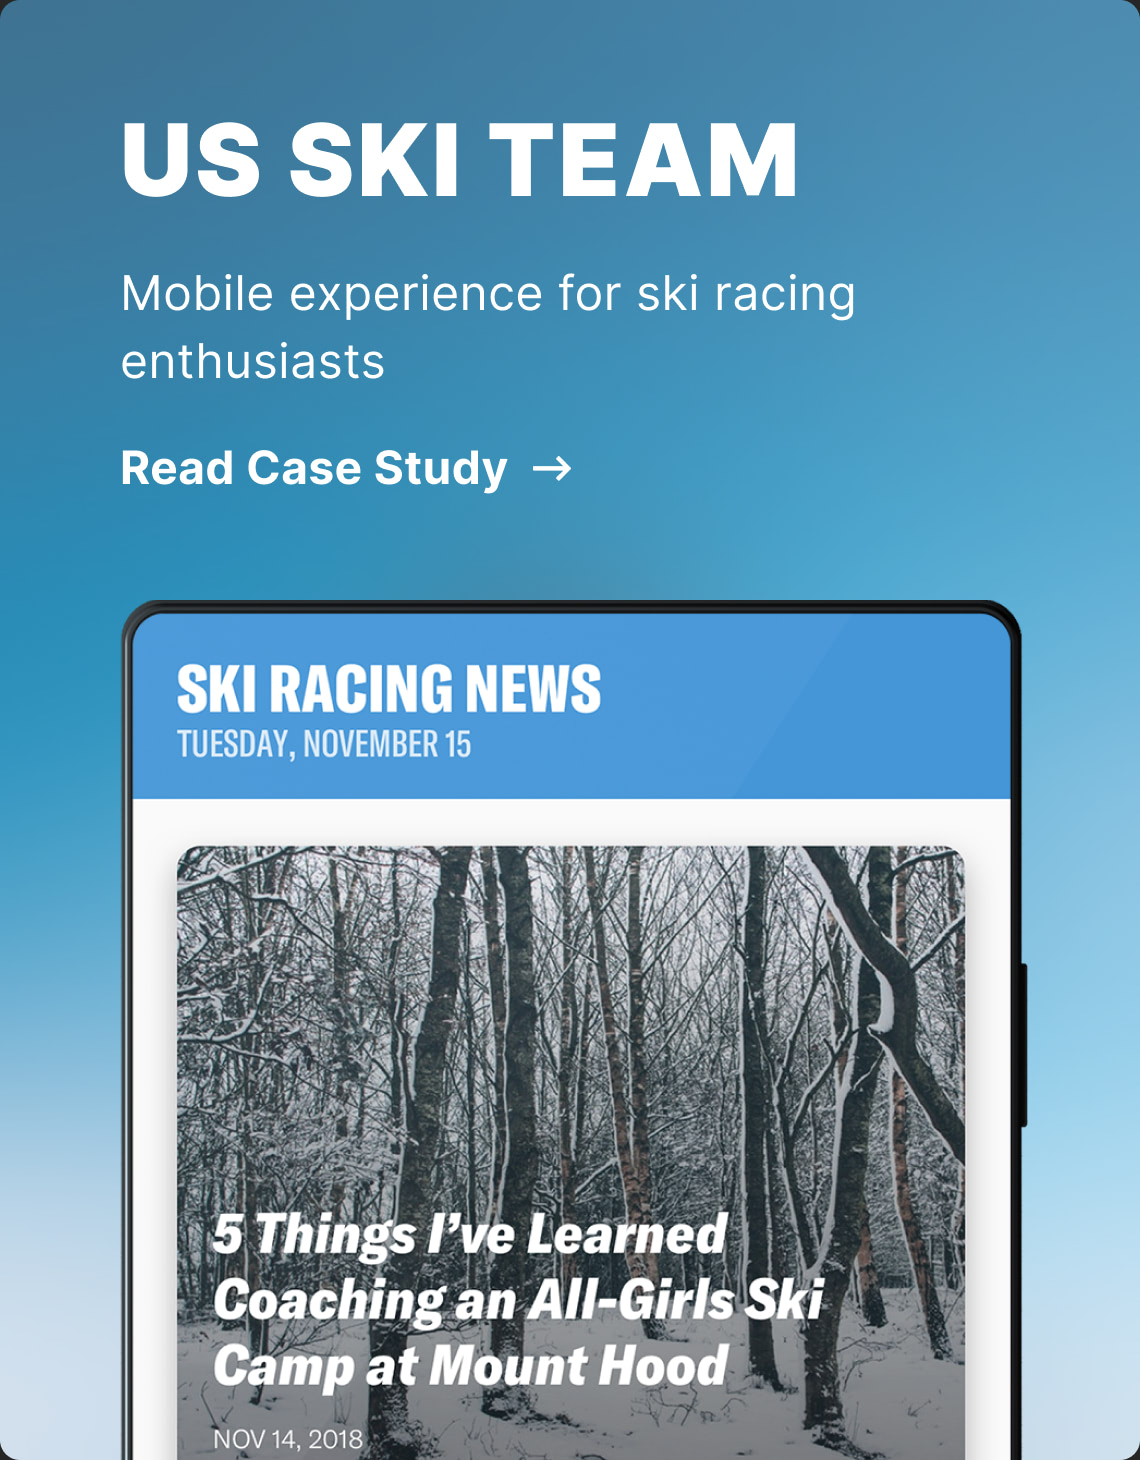 US SKI TEAM PROJECT THUMBNAIL